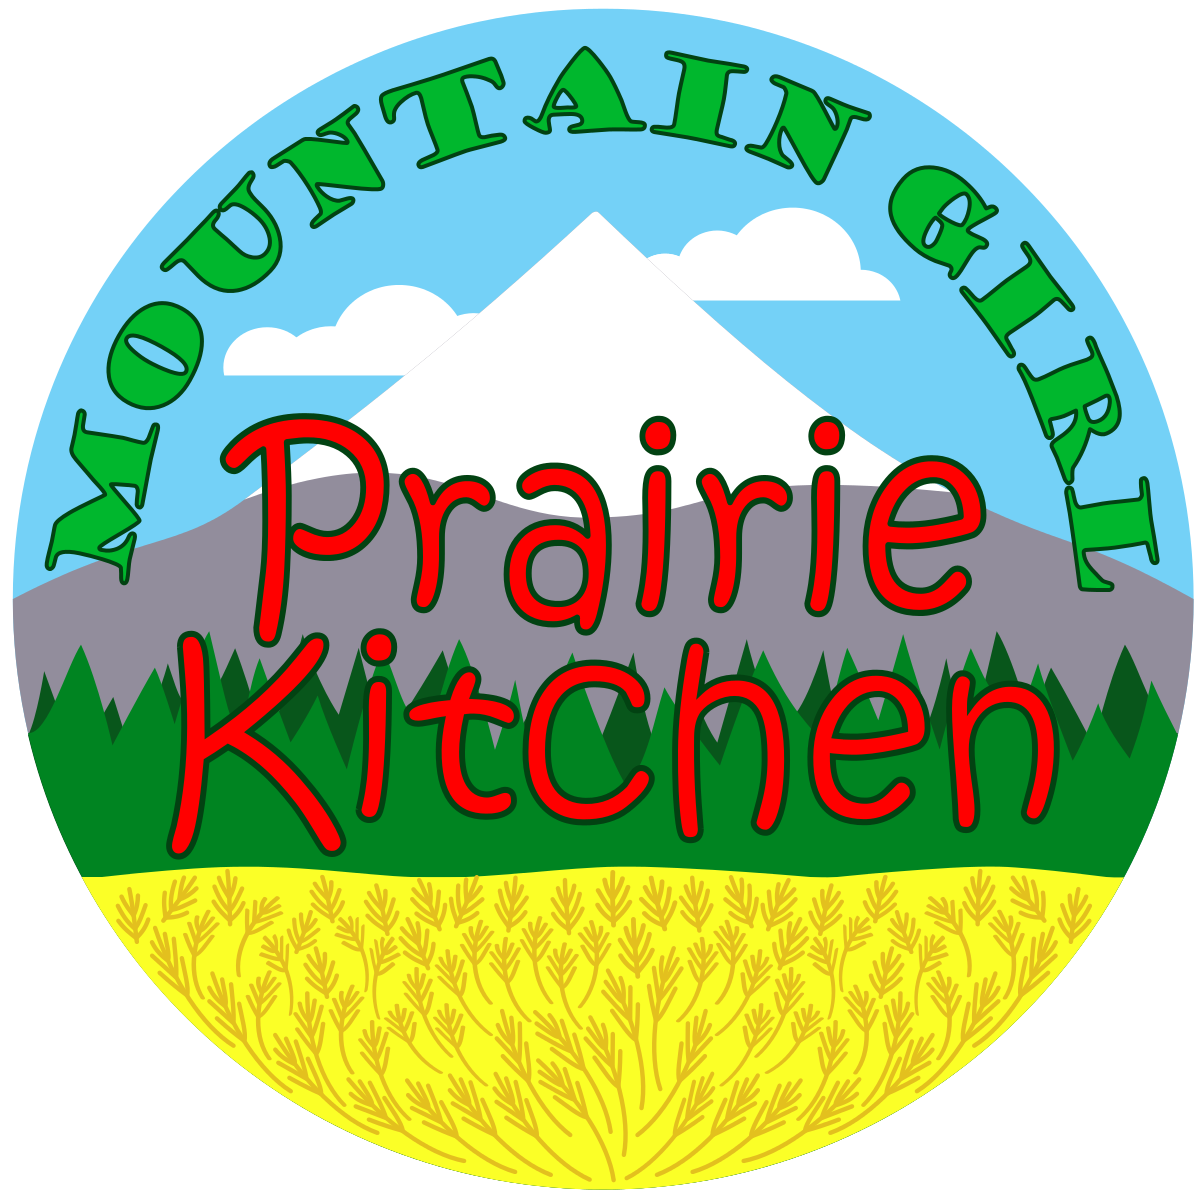 mountaingirlprairiekitchen5